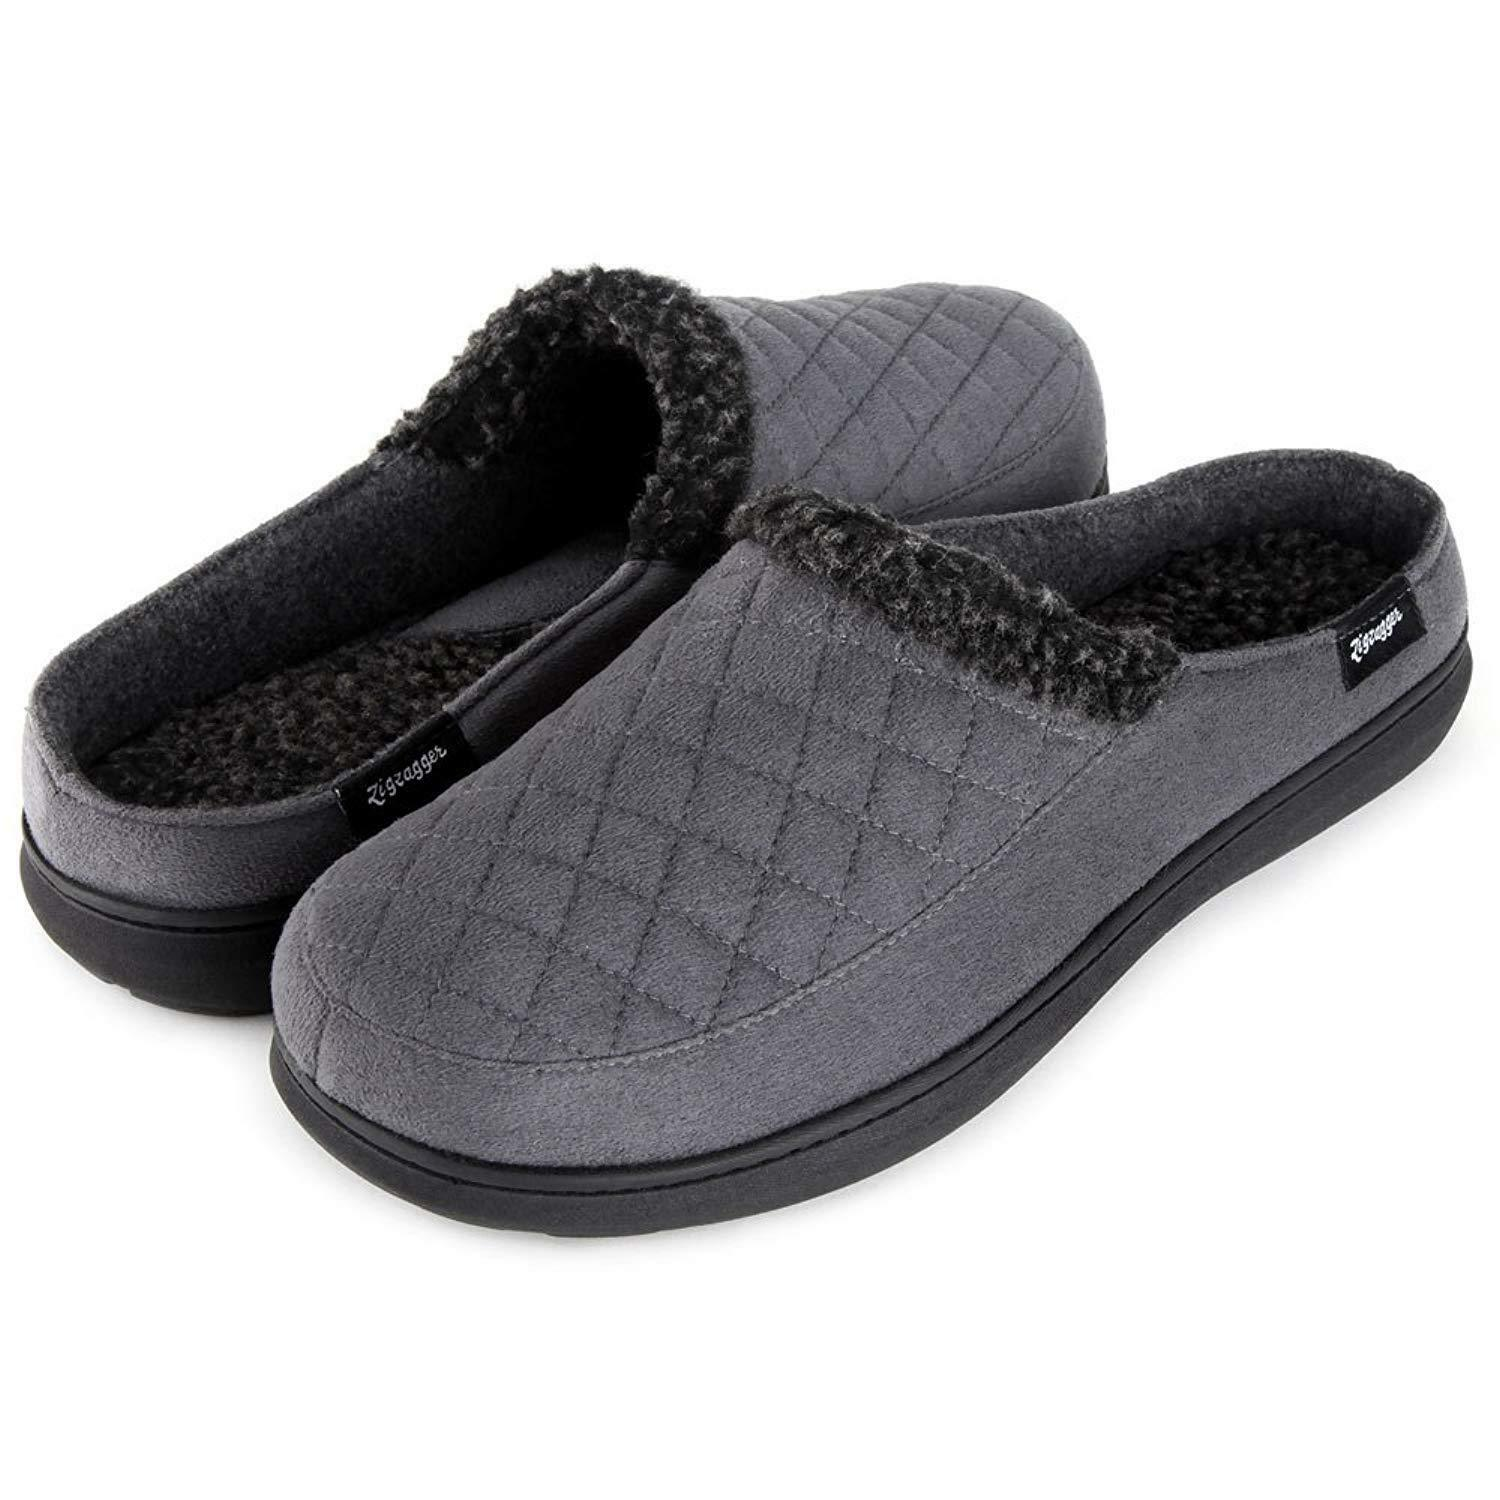 Zigzagger Men'S Suede Fabric Memory Foam Slippers Slip On Clog House Shoes Ind